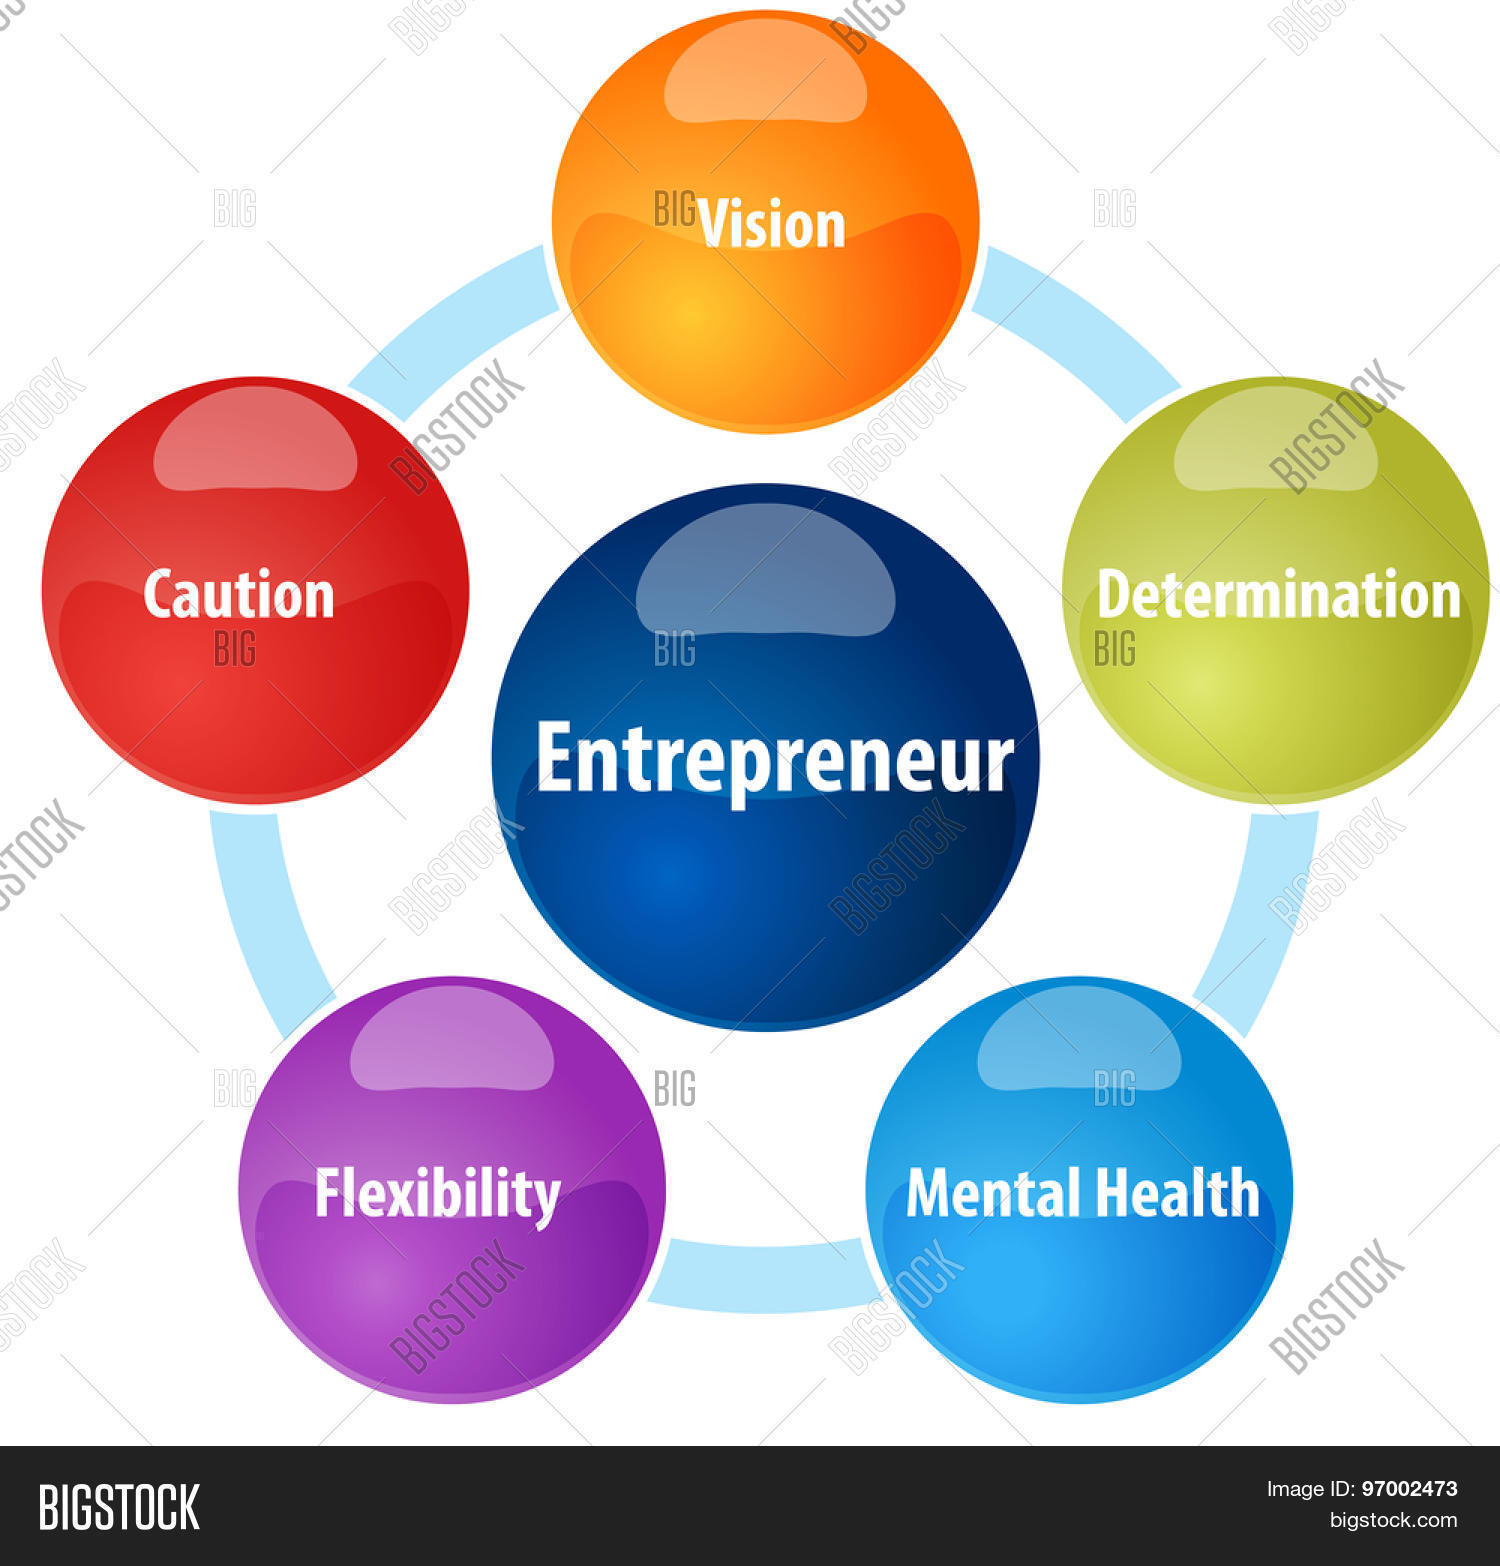 Business strategy concept infographic diagram illustration of ...